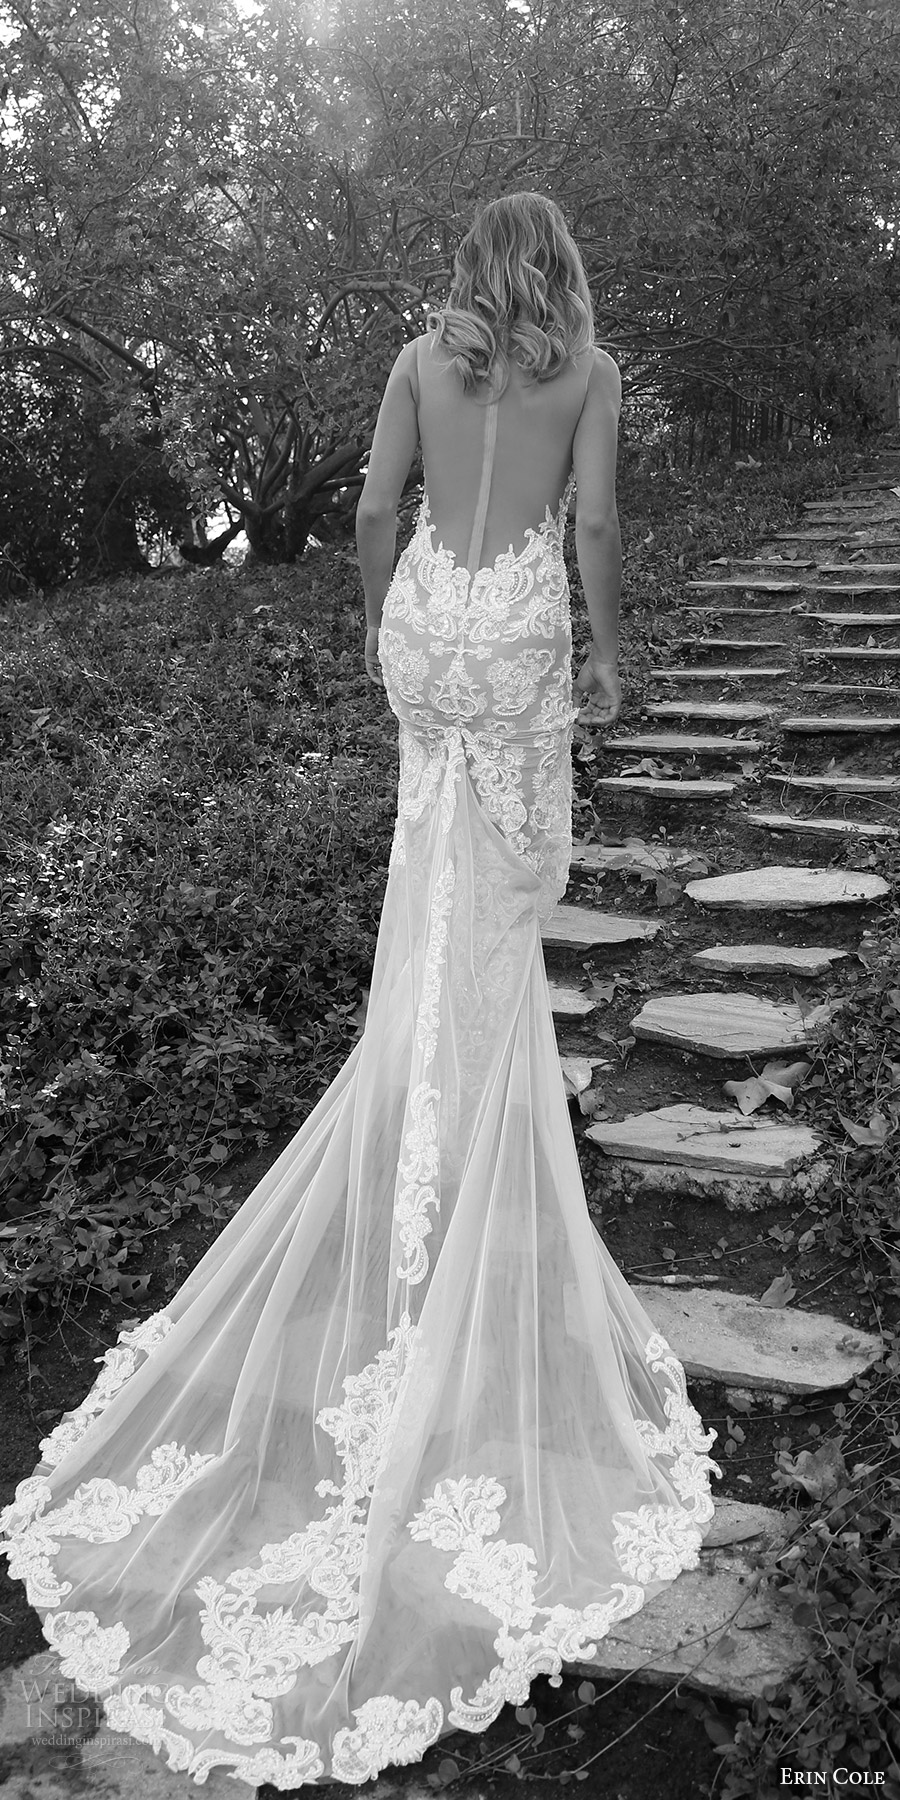 erin cole fall 2017 bridal sleeveless illusion bateau split sweetheart sheath lace wedding dress illusion open back (ambrosia) mv train